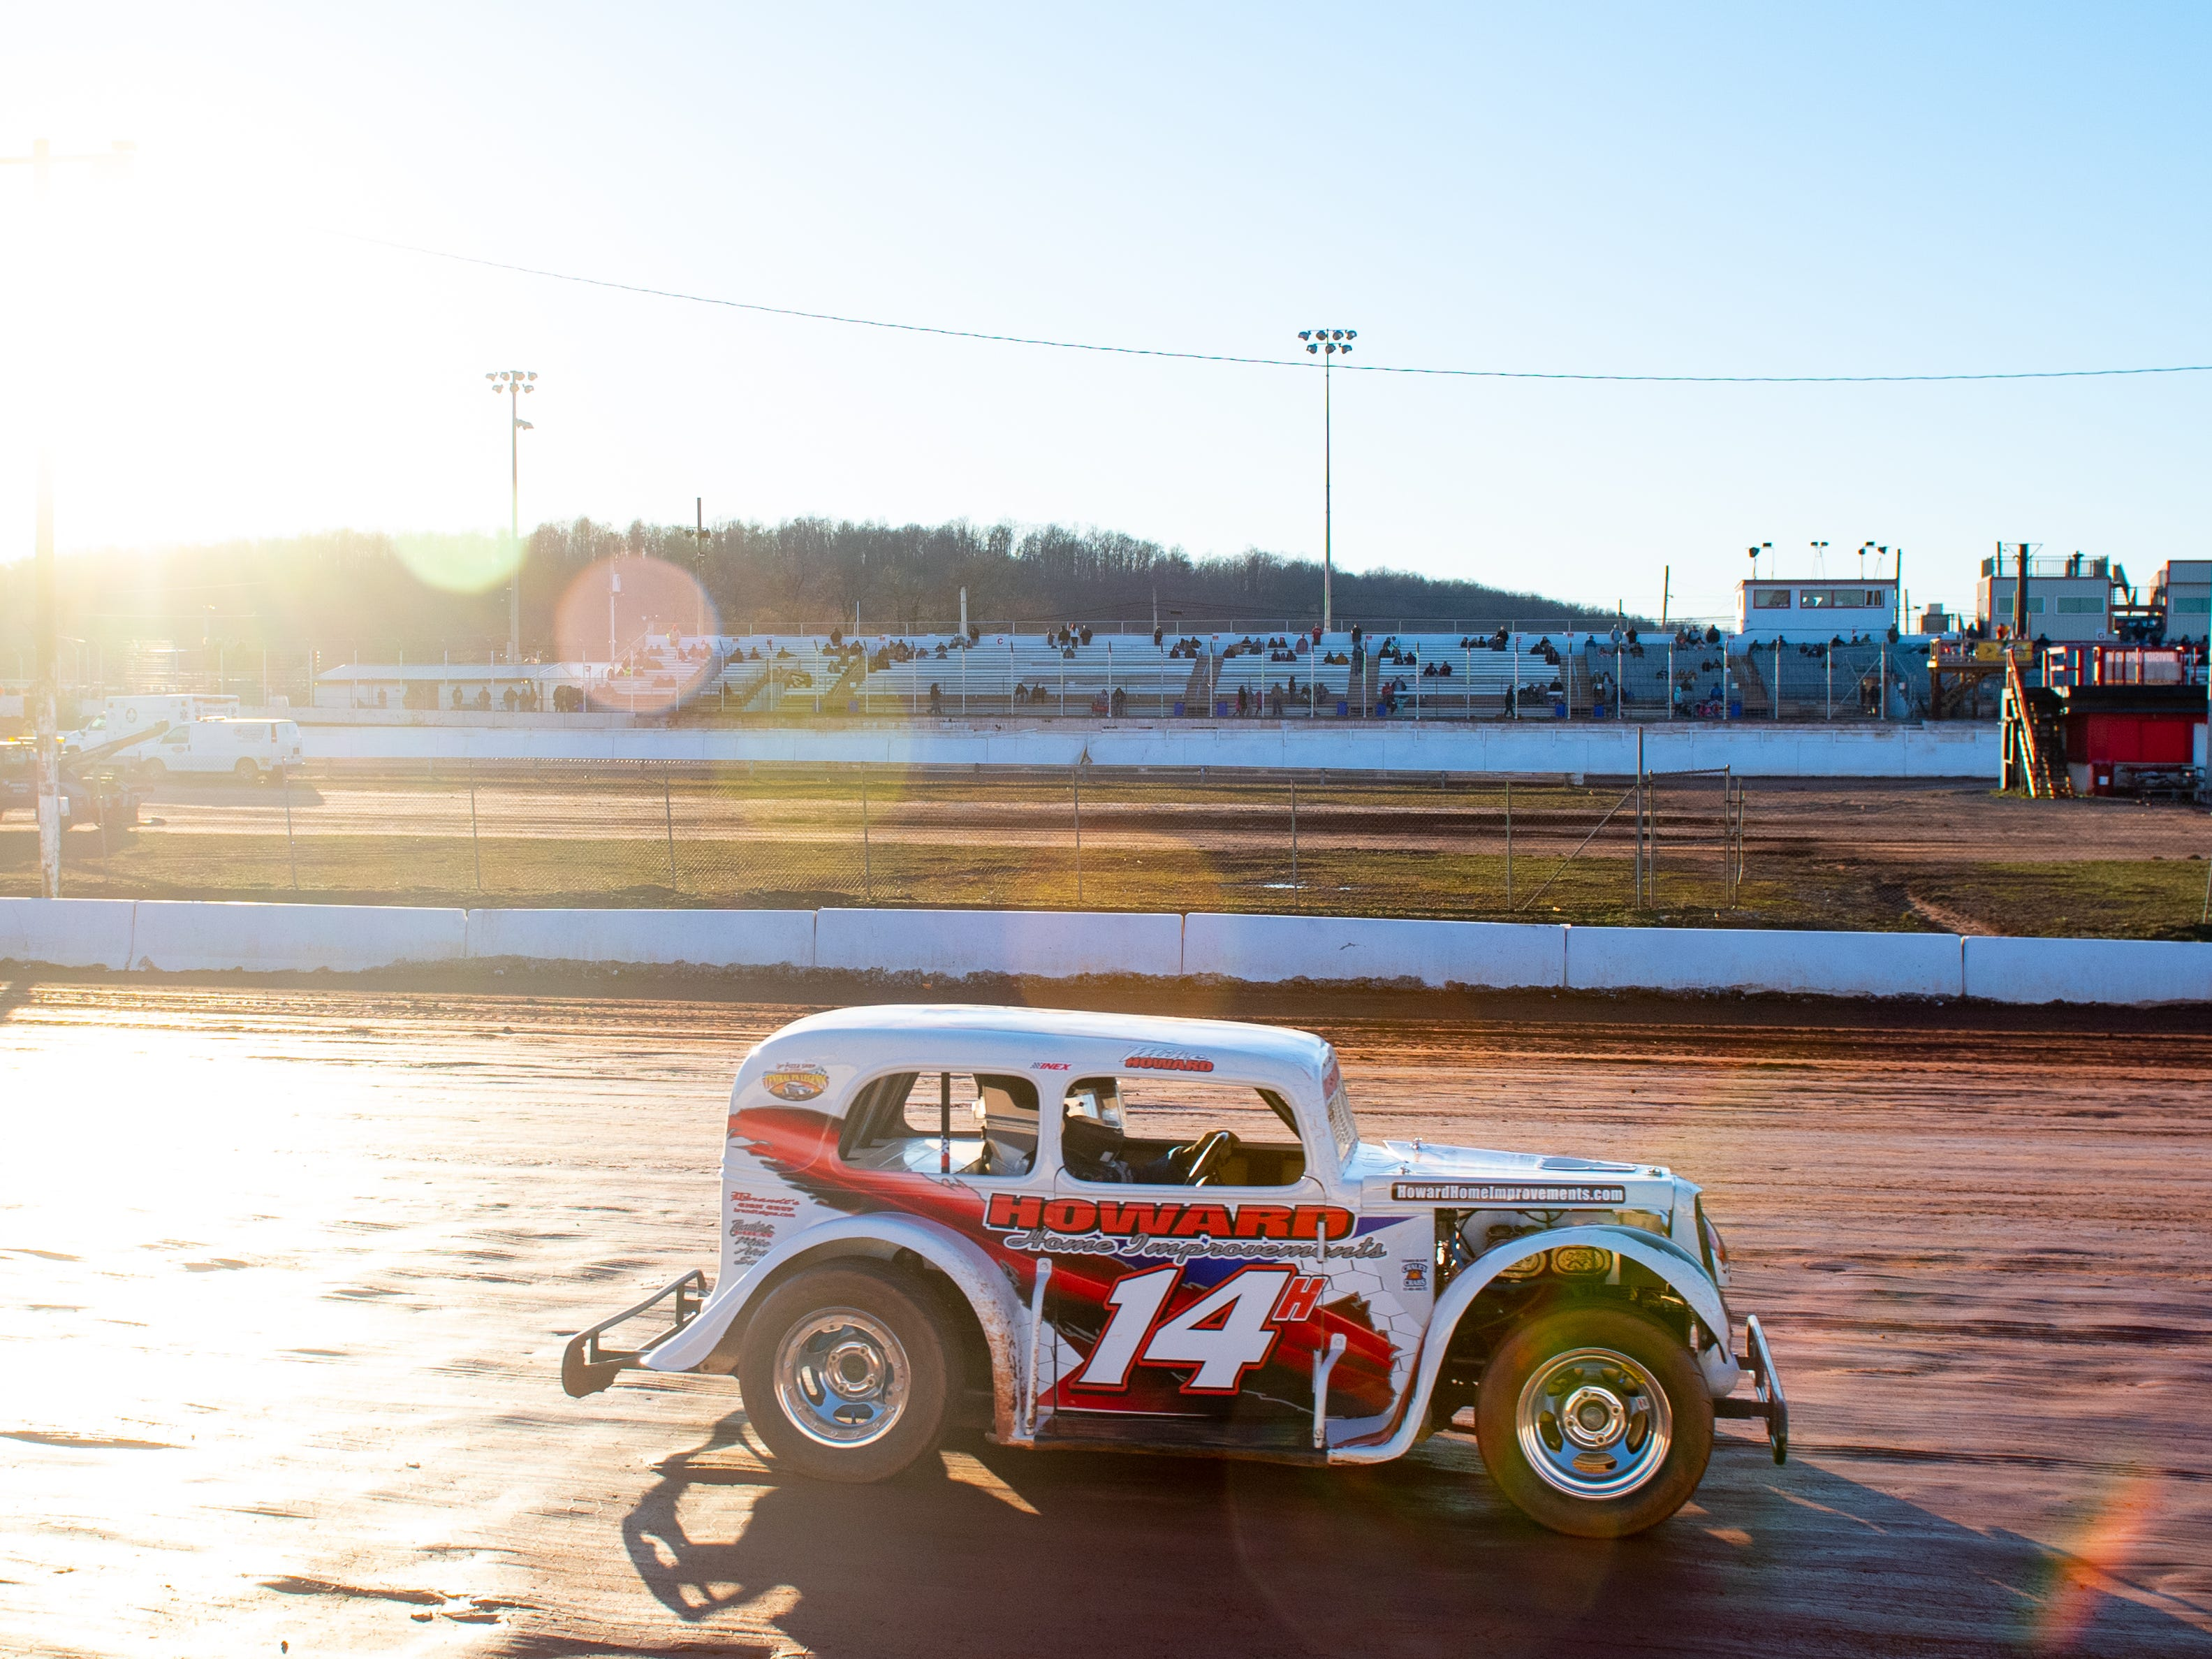 It's a beautiful day to race at the 2019 season opener at BAPS Motor Speedway, March 23, 2019.